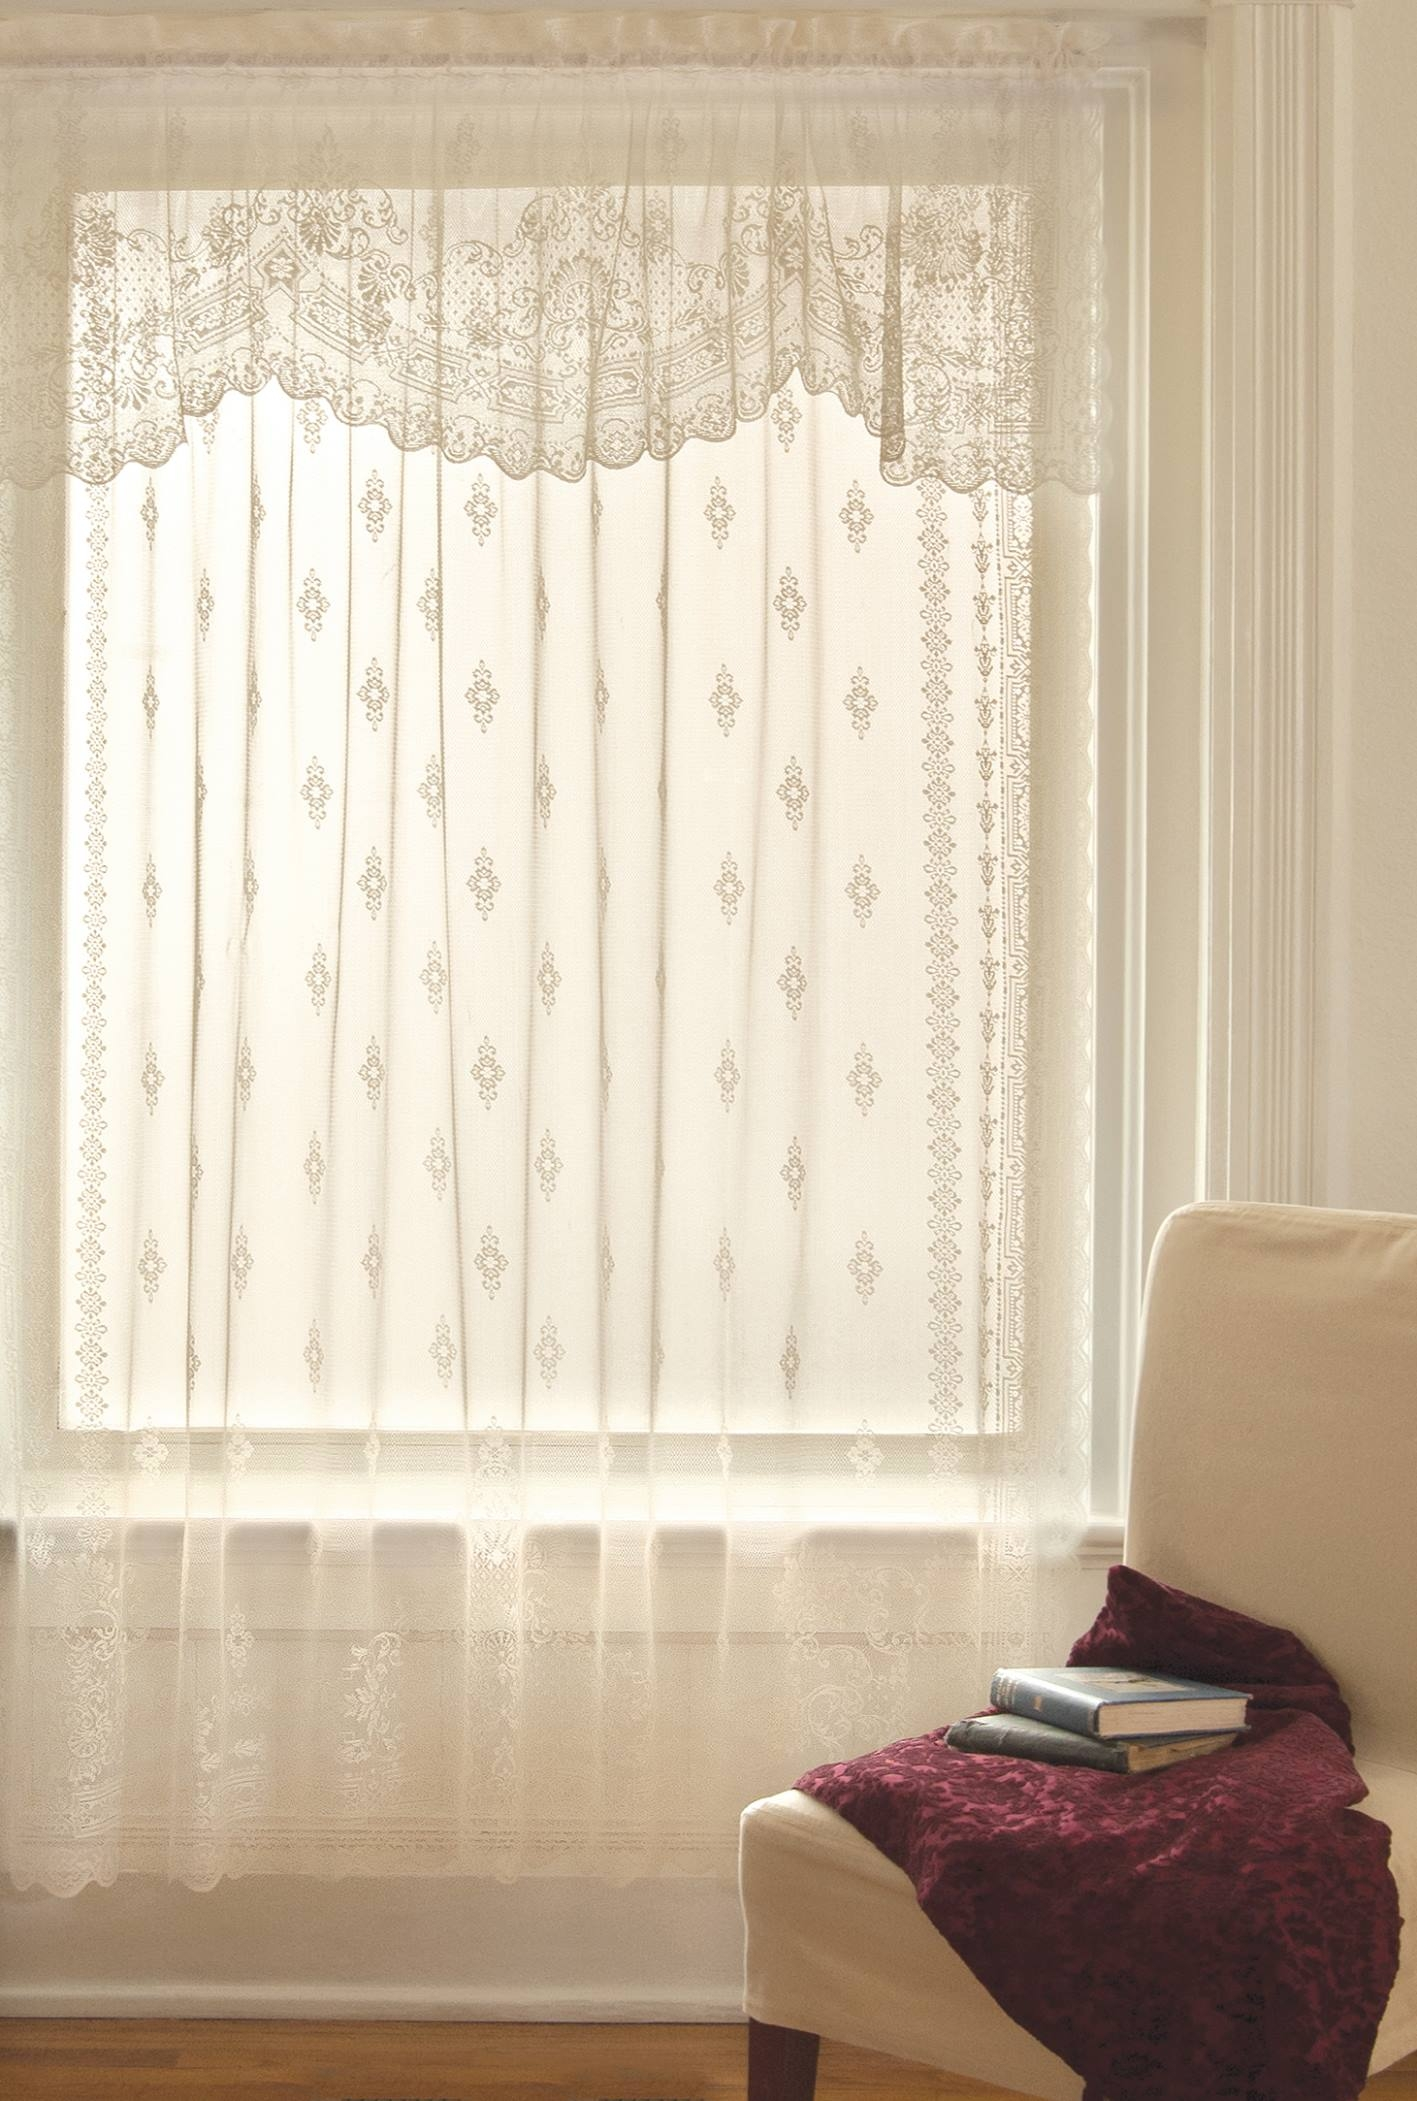 Ideas Kmart Kitchen Curtains Tier Curtain Kmart Lace Curtains Throughout Lace Curtain Sets (View 16 of 25)